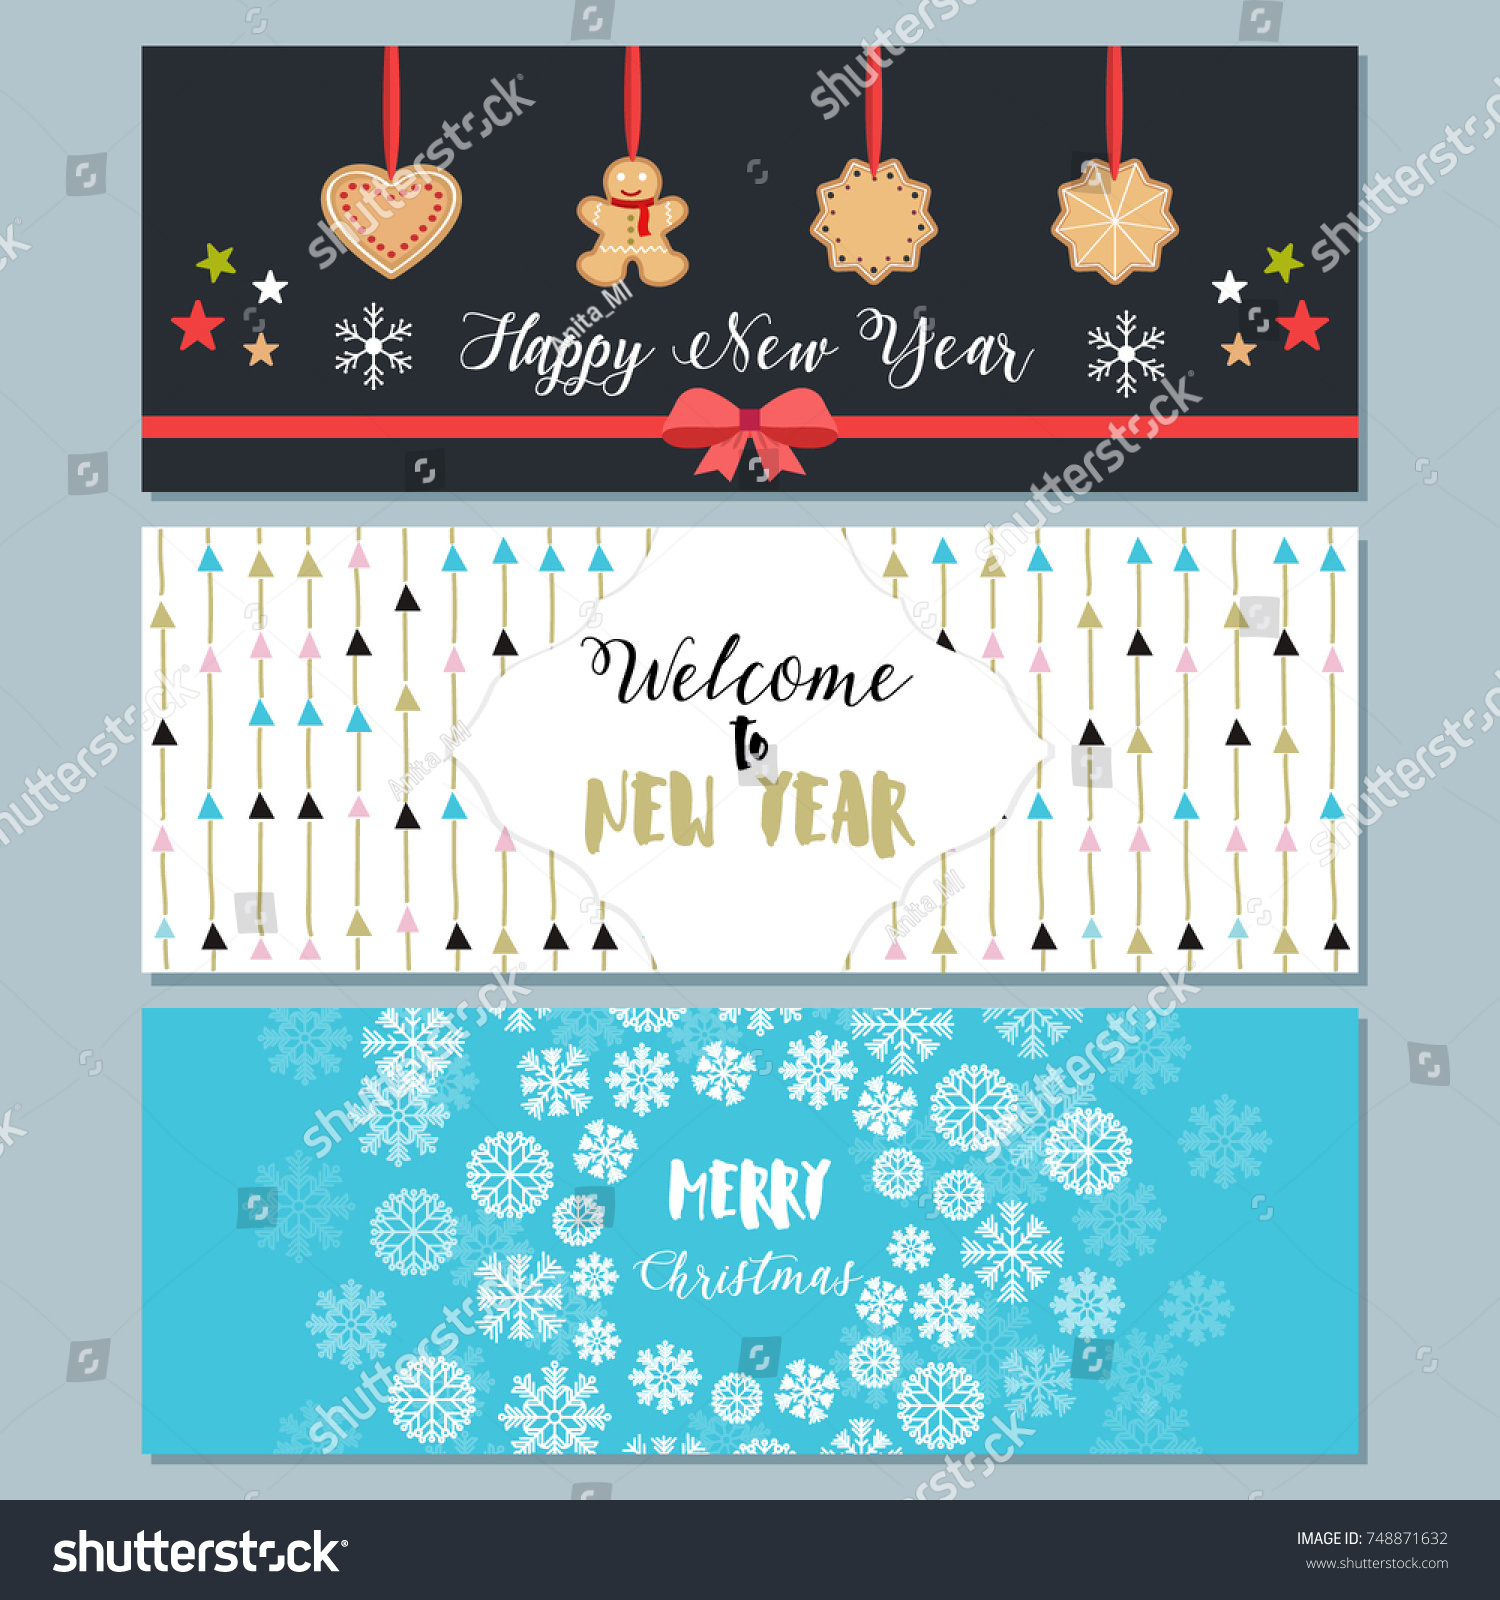 Set Christmas New Year Cards Flat Stock Vector 748871632 - Shutterstock